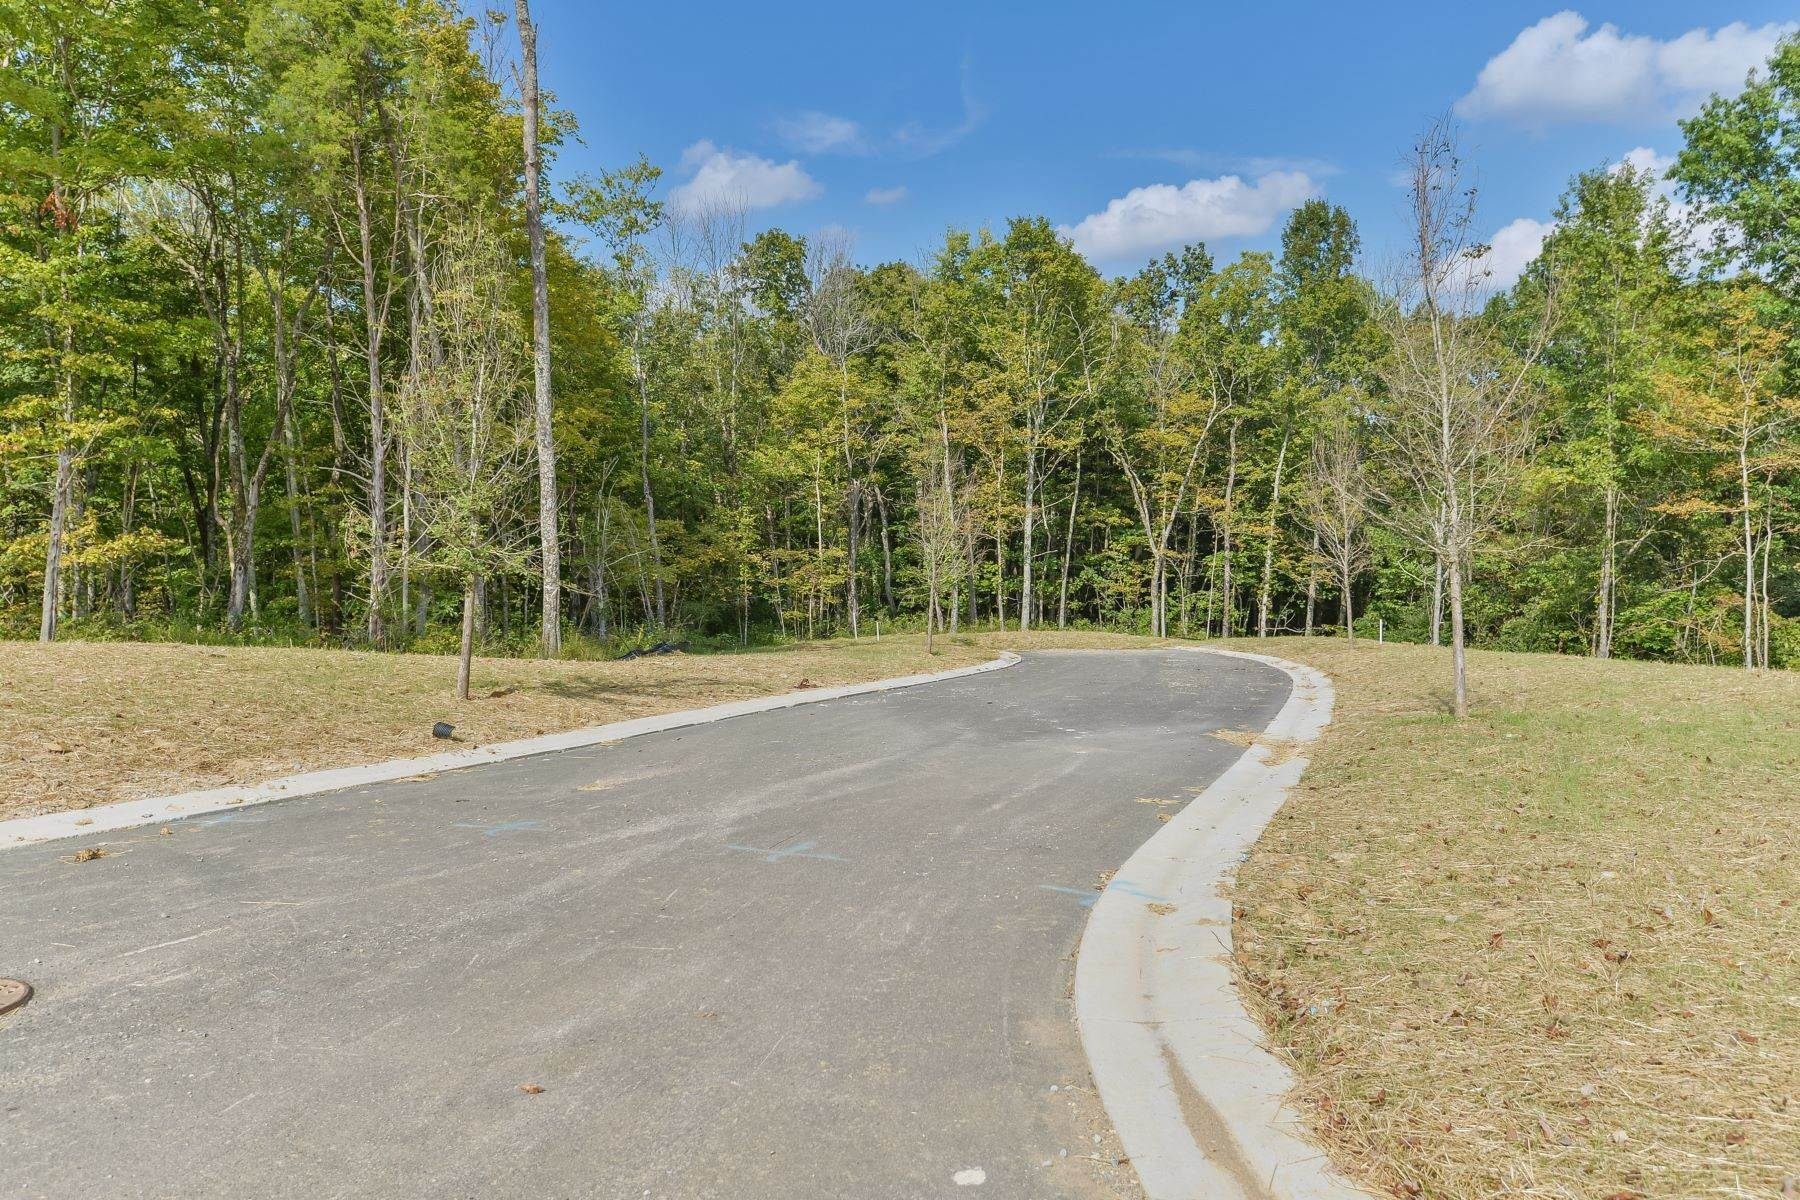 Land for Sale at Lot 121 - Catalpa Farms 121 Catalpa Farms Drive Fisherville, Kentucky 40023 United States